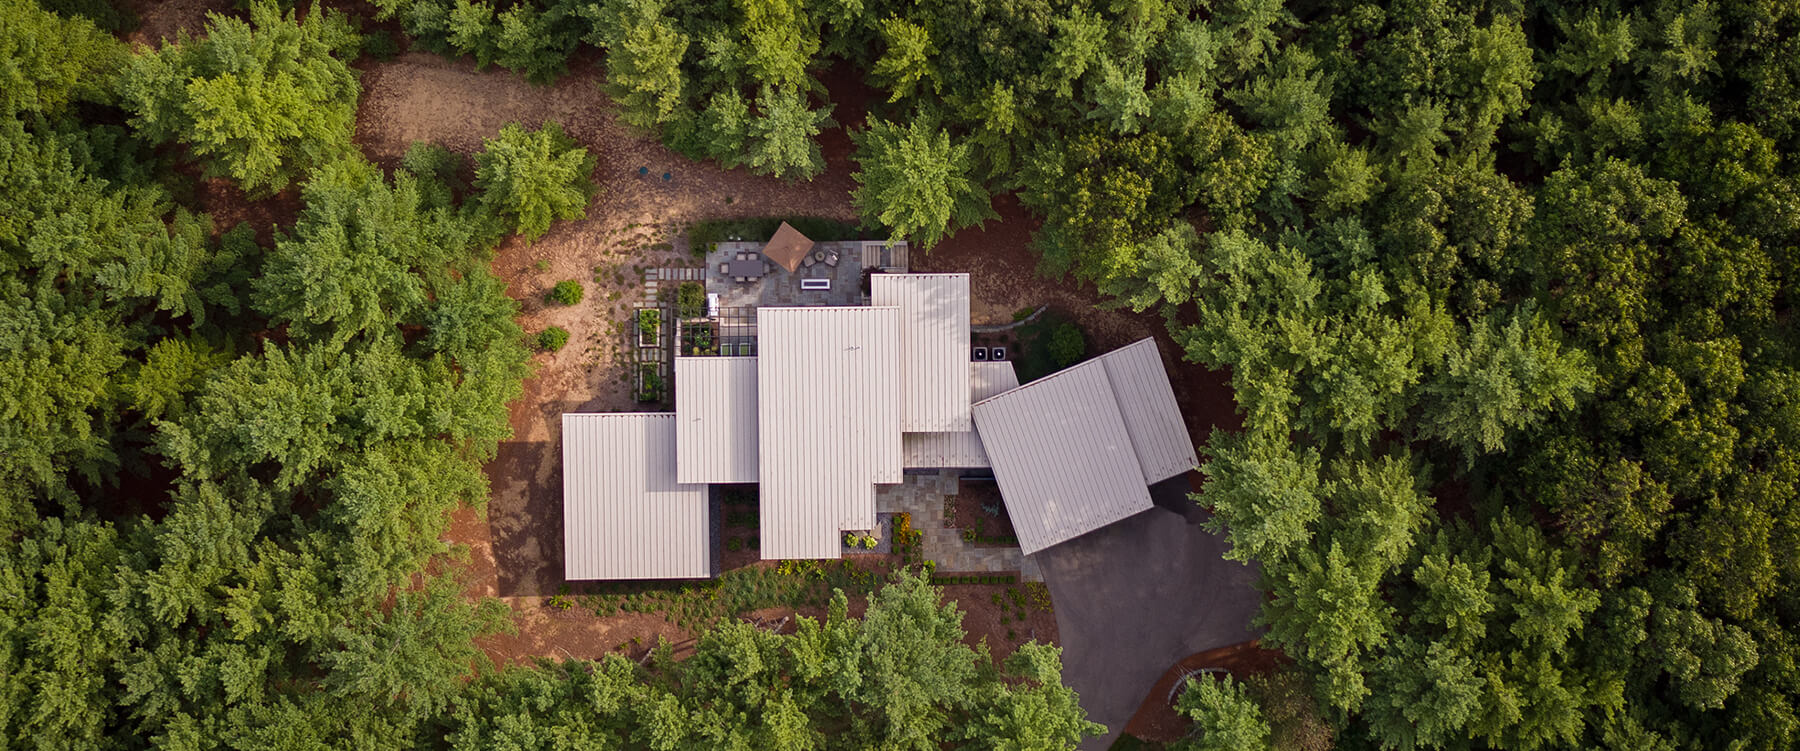 drone image of Contemporary Michigan Home